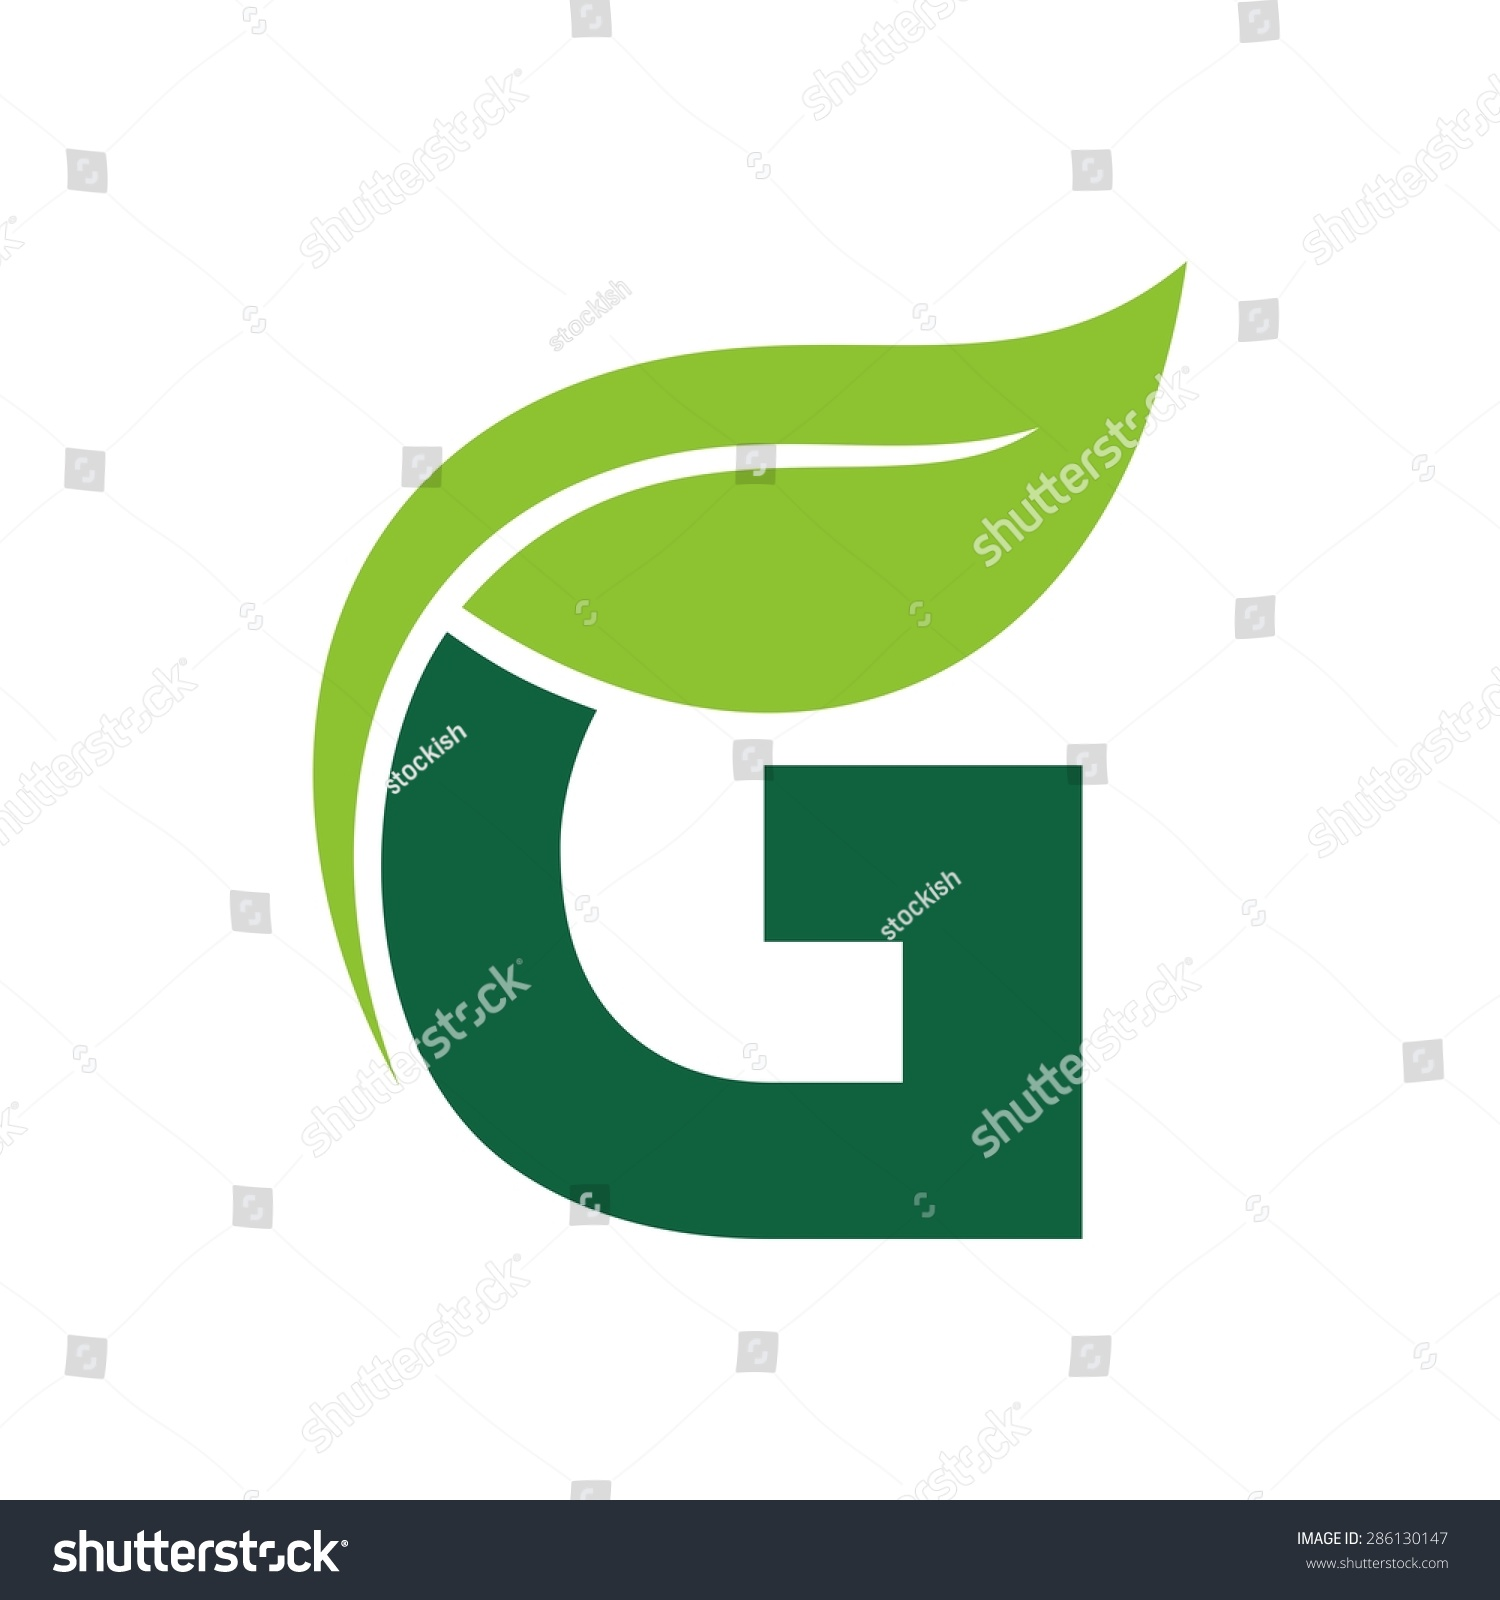 Logo Vector Graphic Elegant Green Possible Stock Vector Royalty